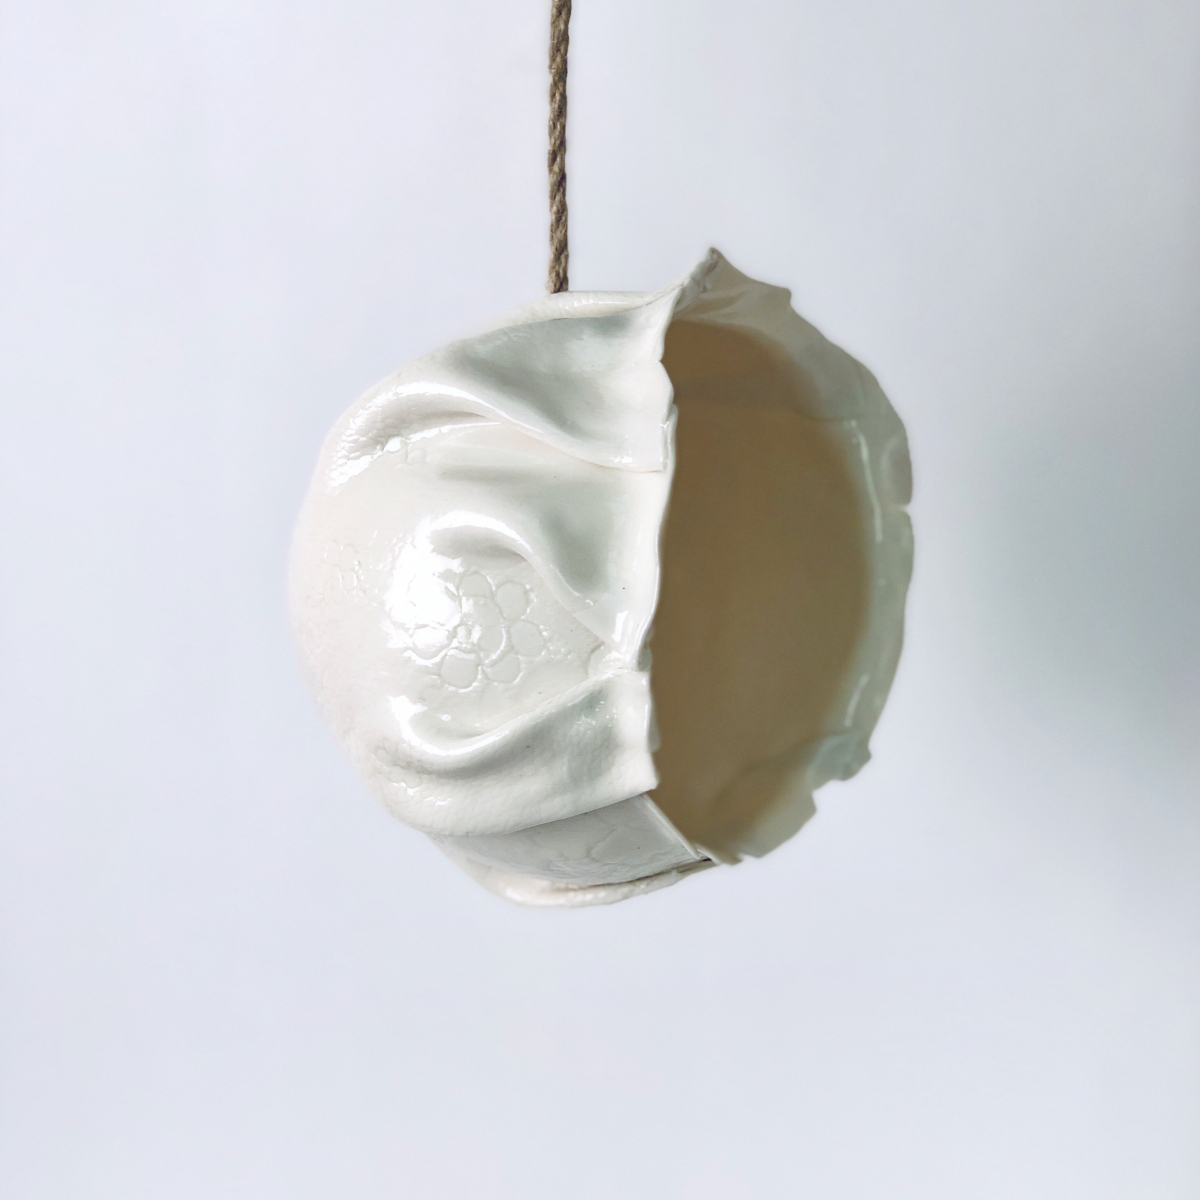 Empty Hanging Planter Suspended in Time by Sonya Ceramic Art